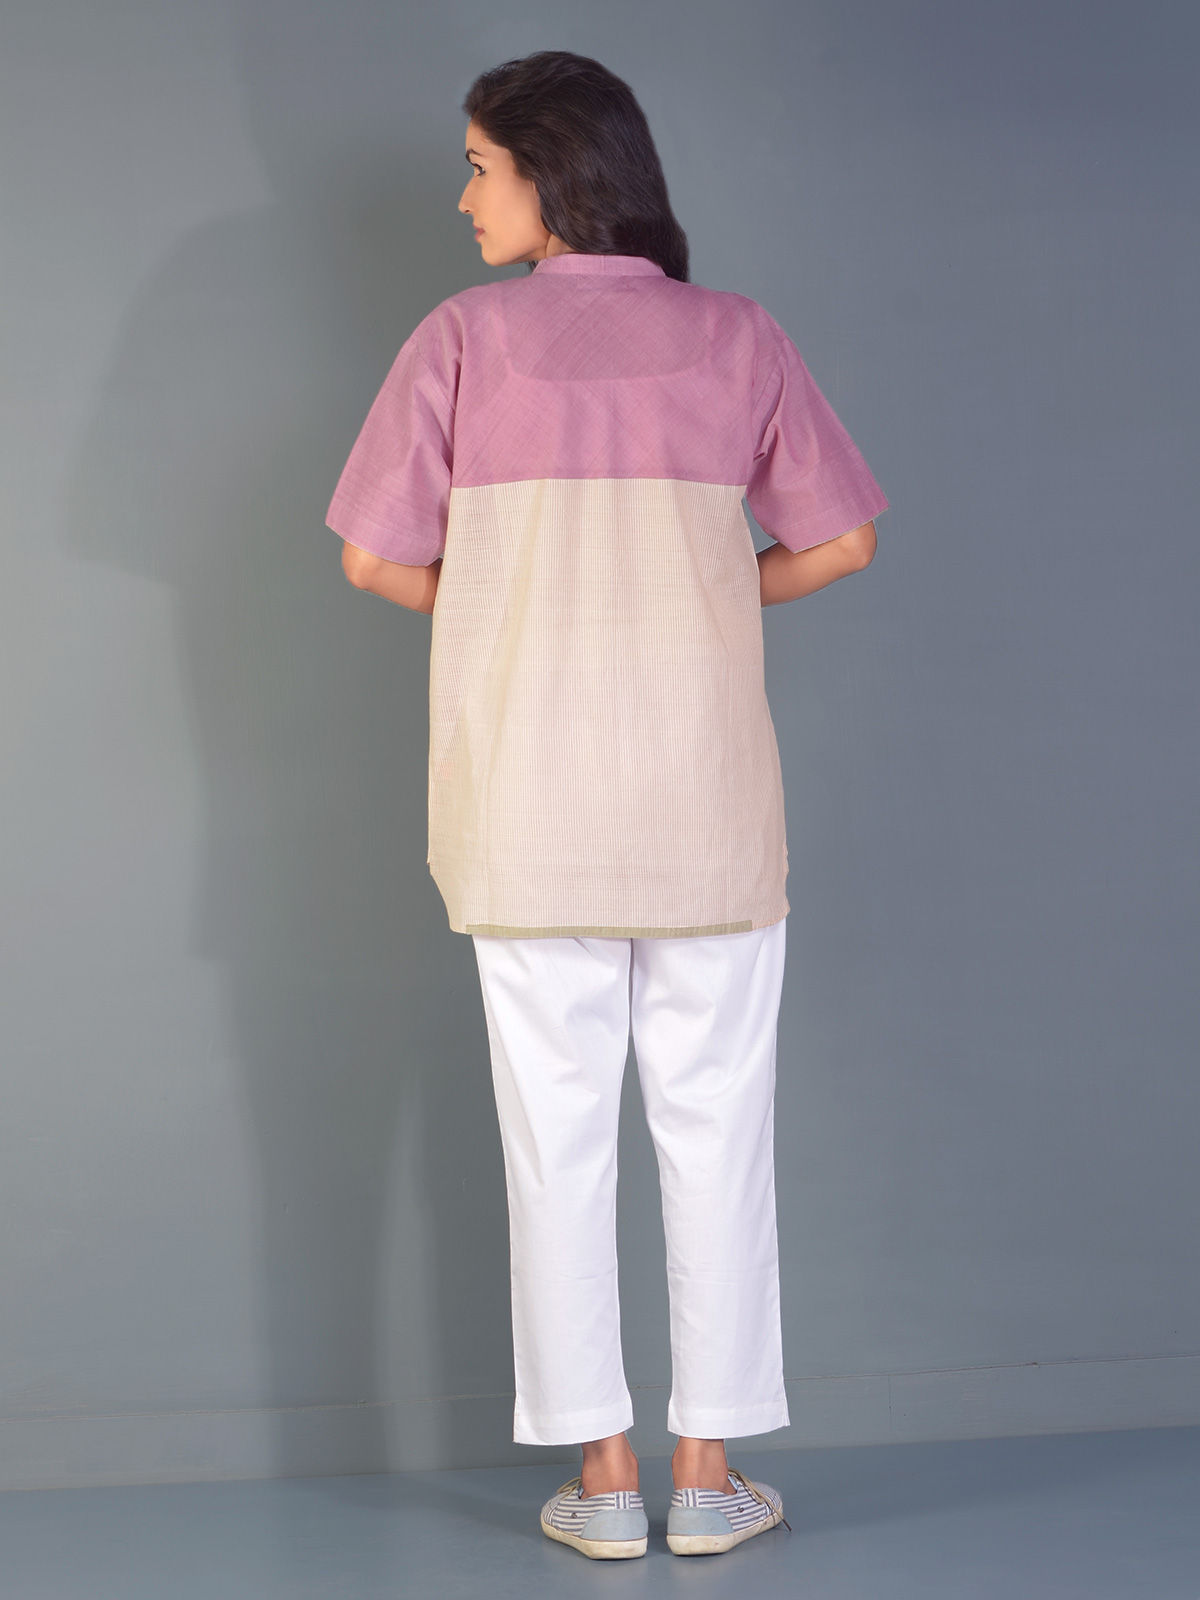 Coconut Crepe block shirt